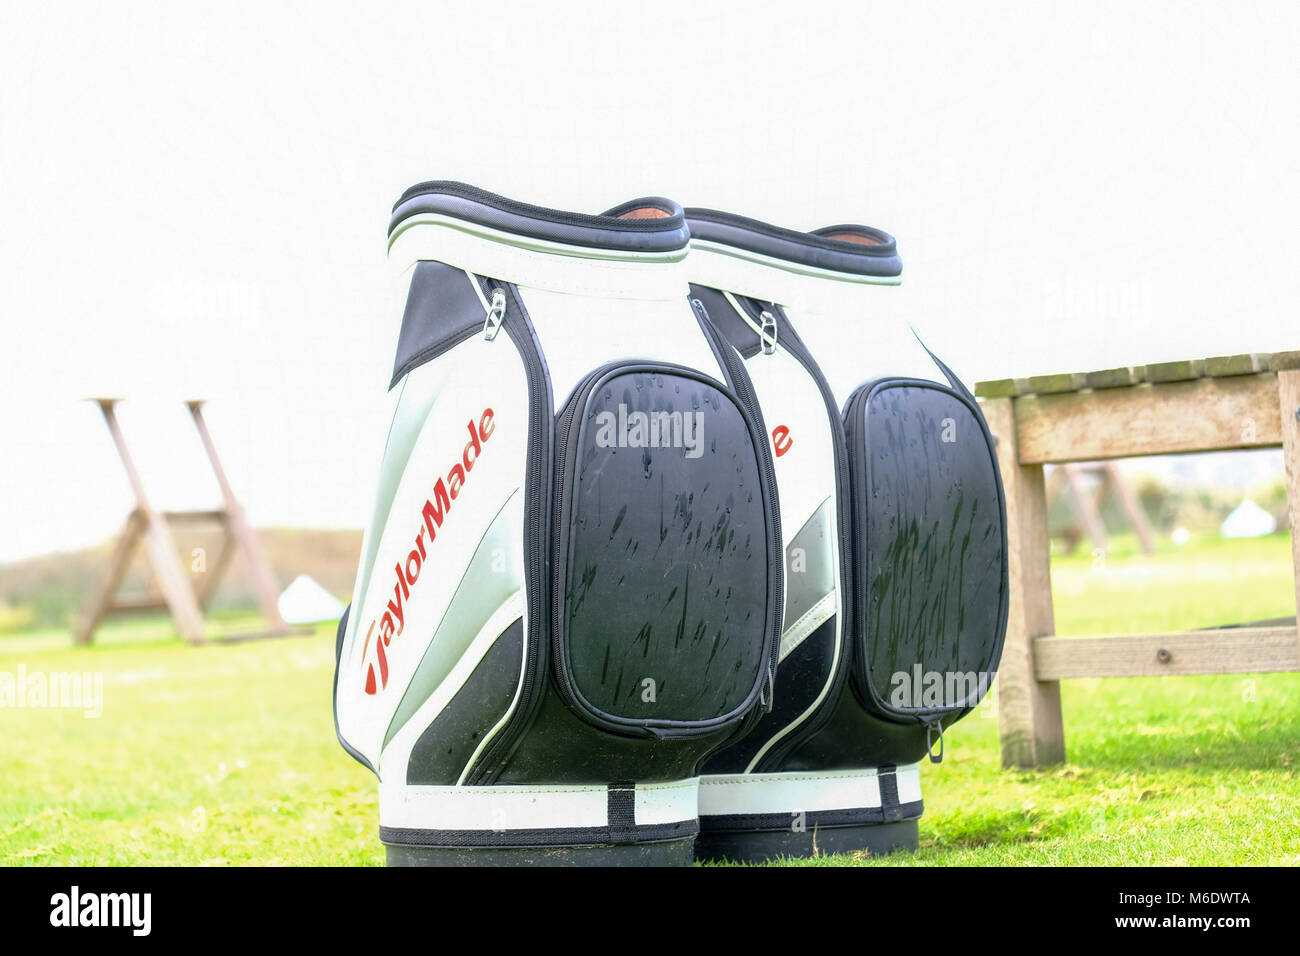 Couple of Taylormade Golf Bags outdoor in rainy weather - Stock Image